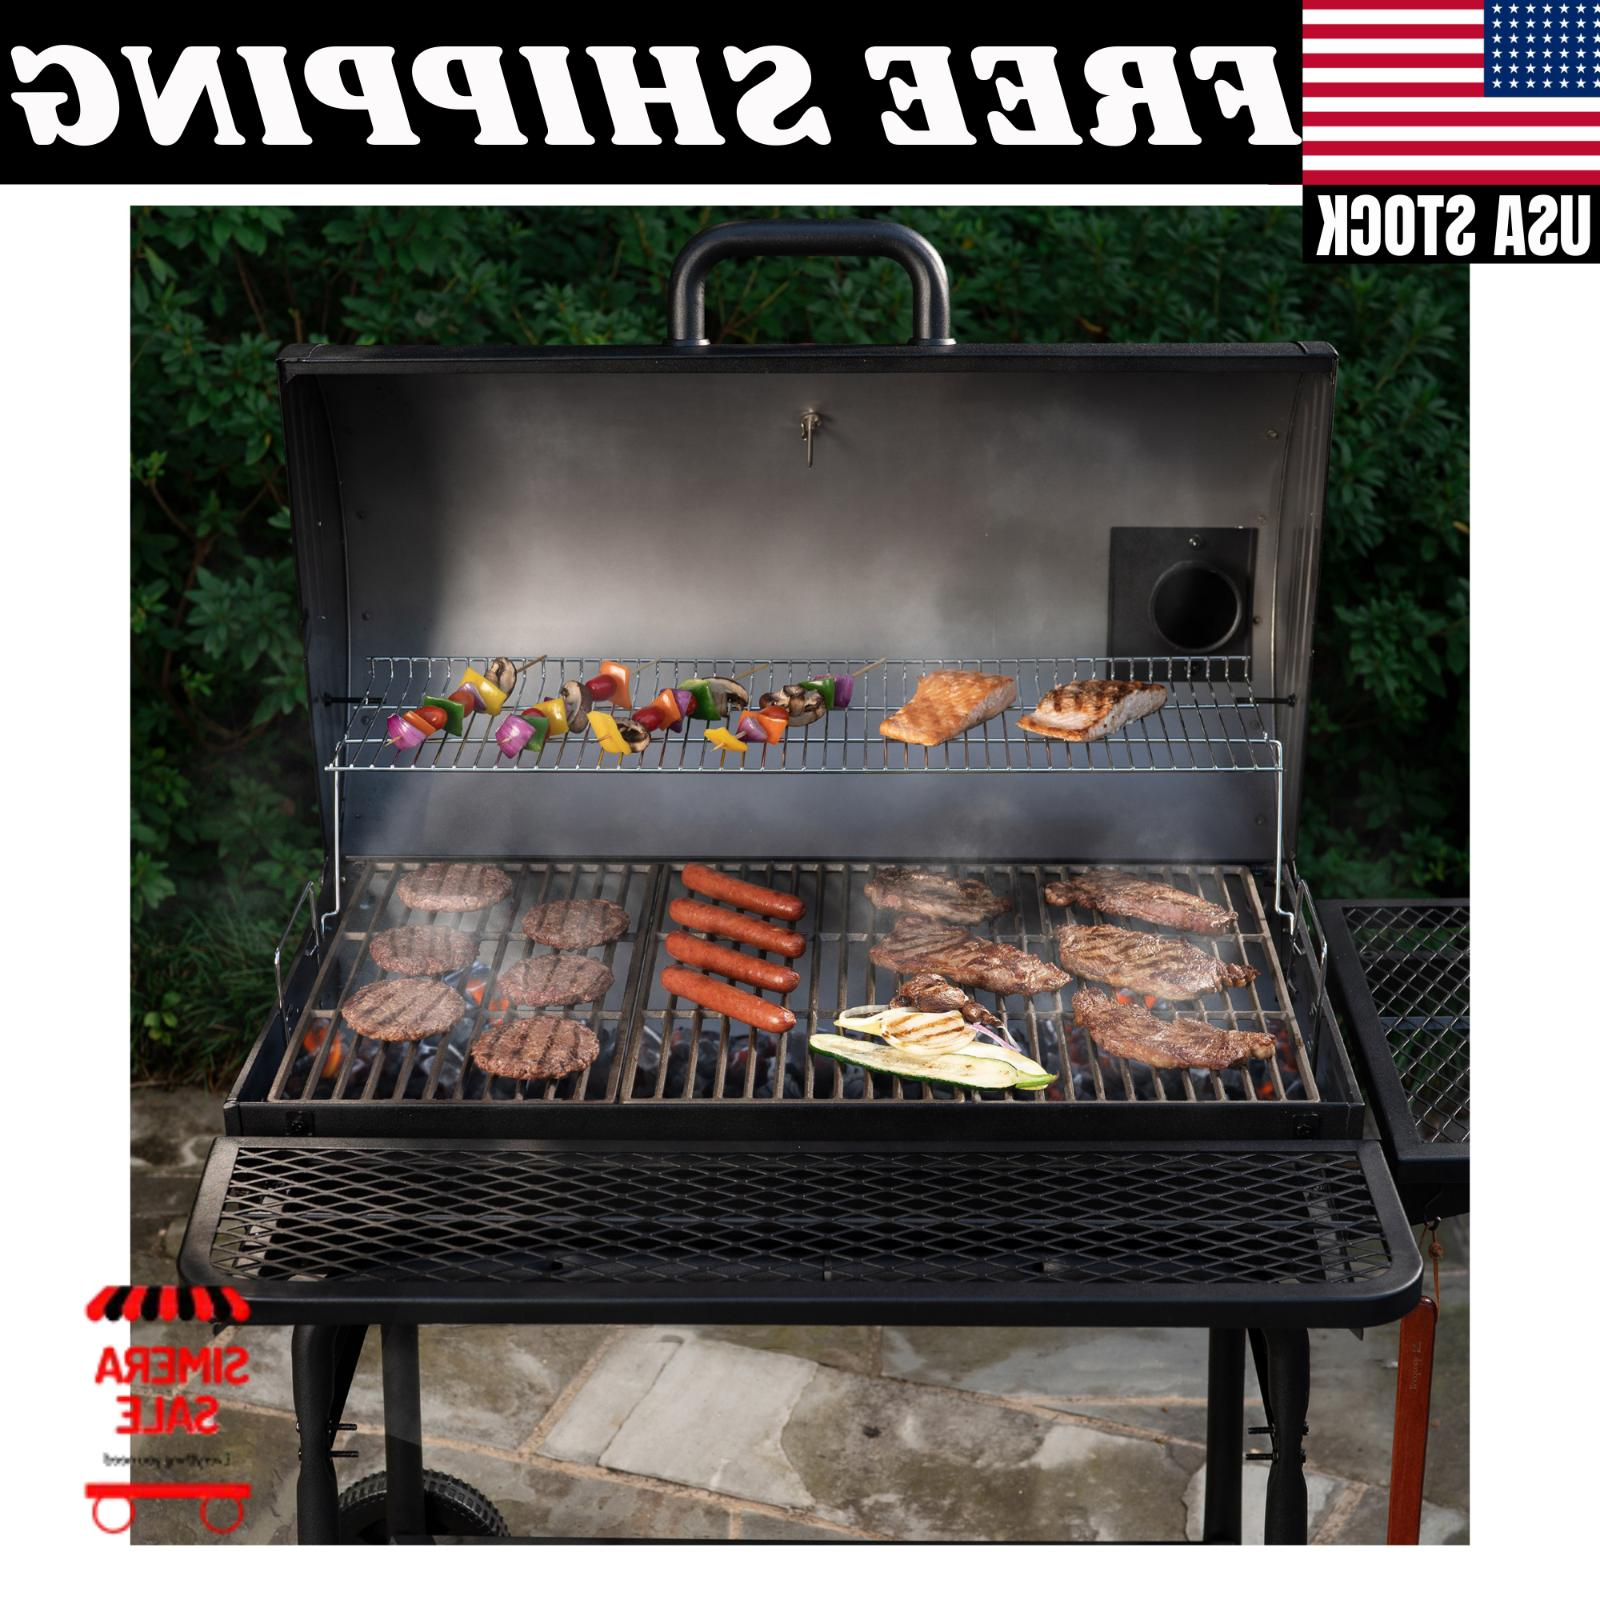 Large Grill Outdoor BBQ Grills Charcoal XL Backyard